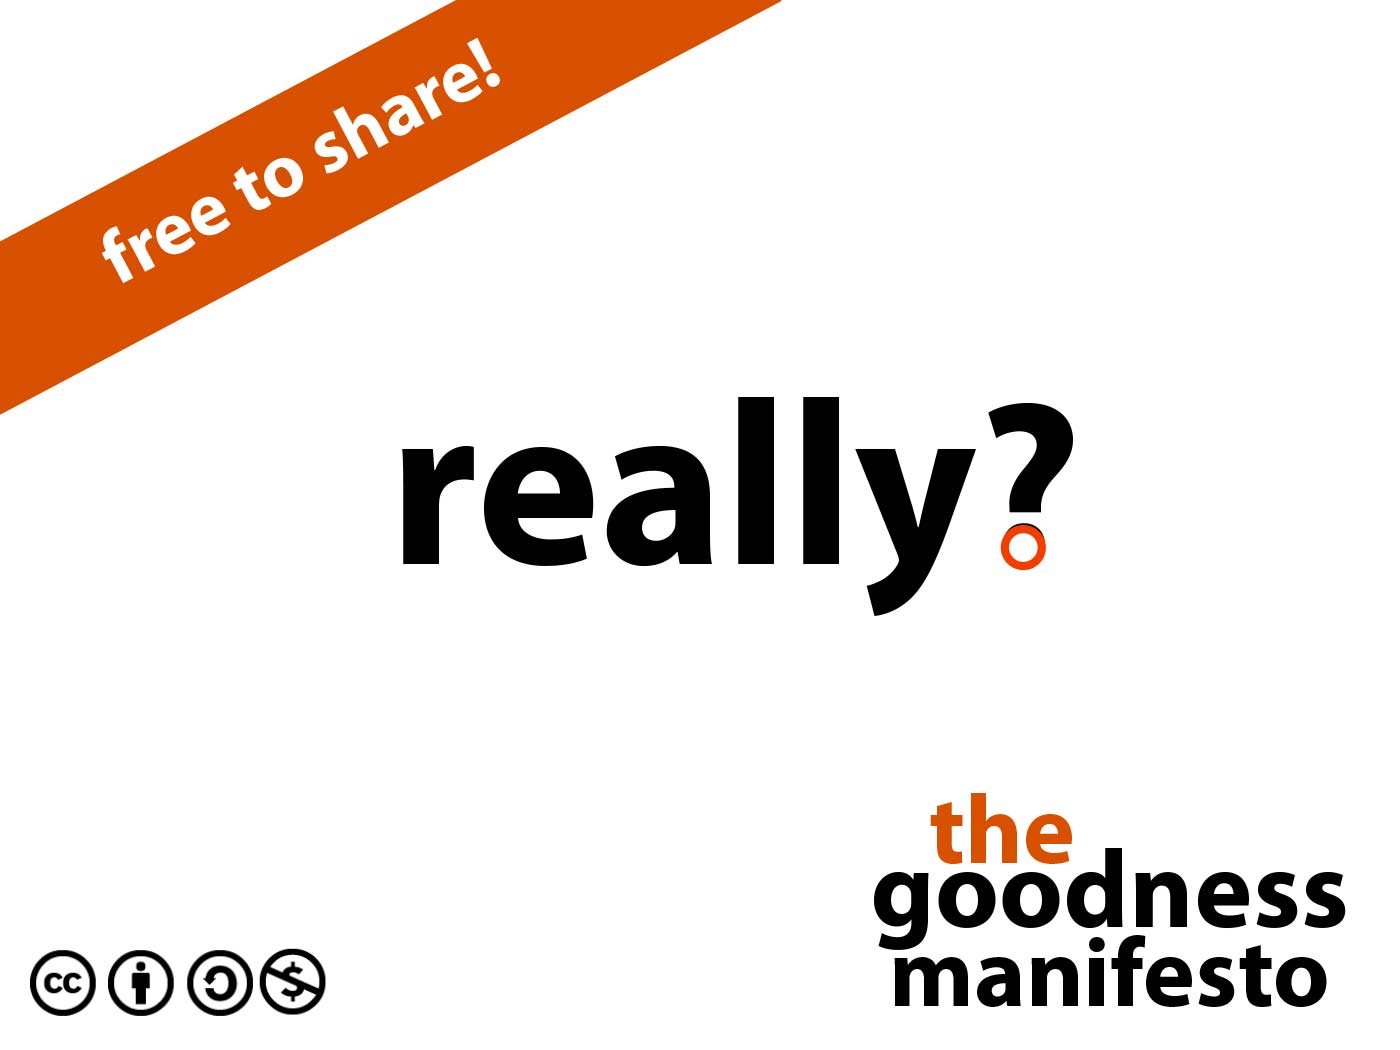 the-goodness-manifesto-1